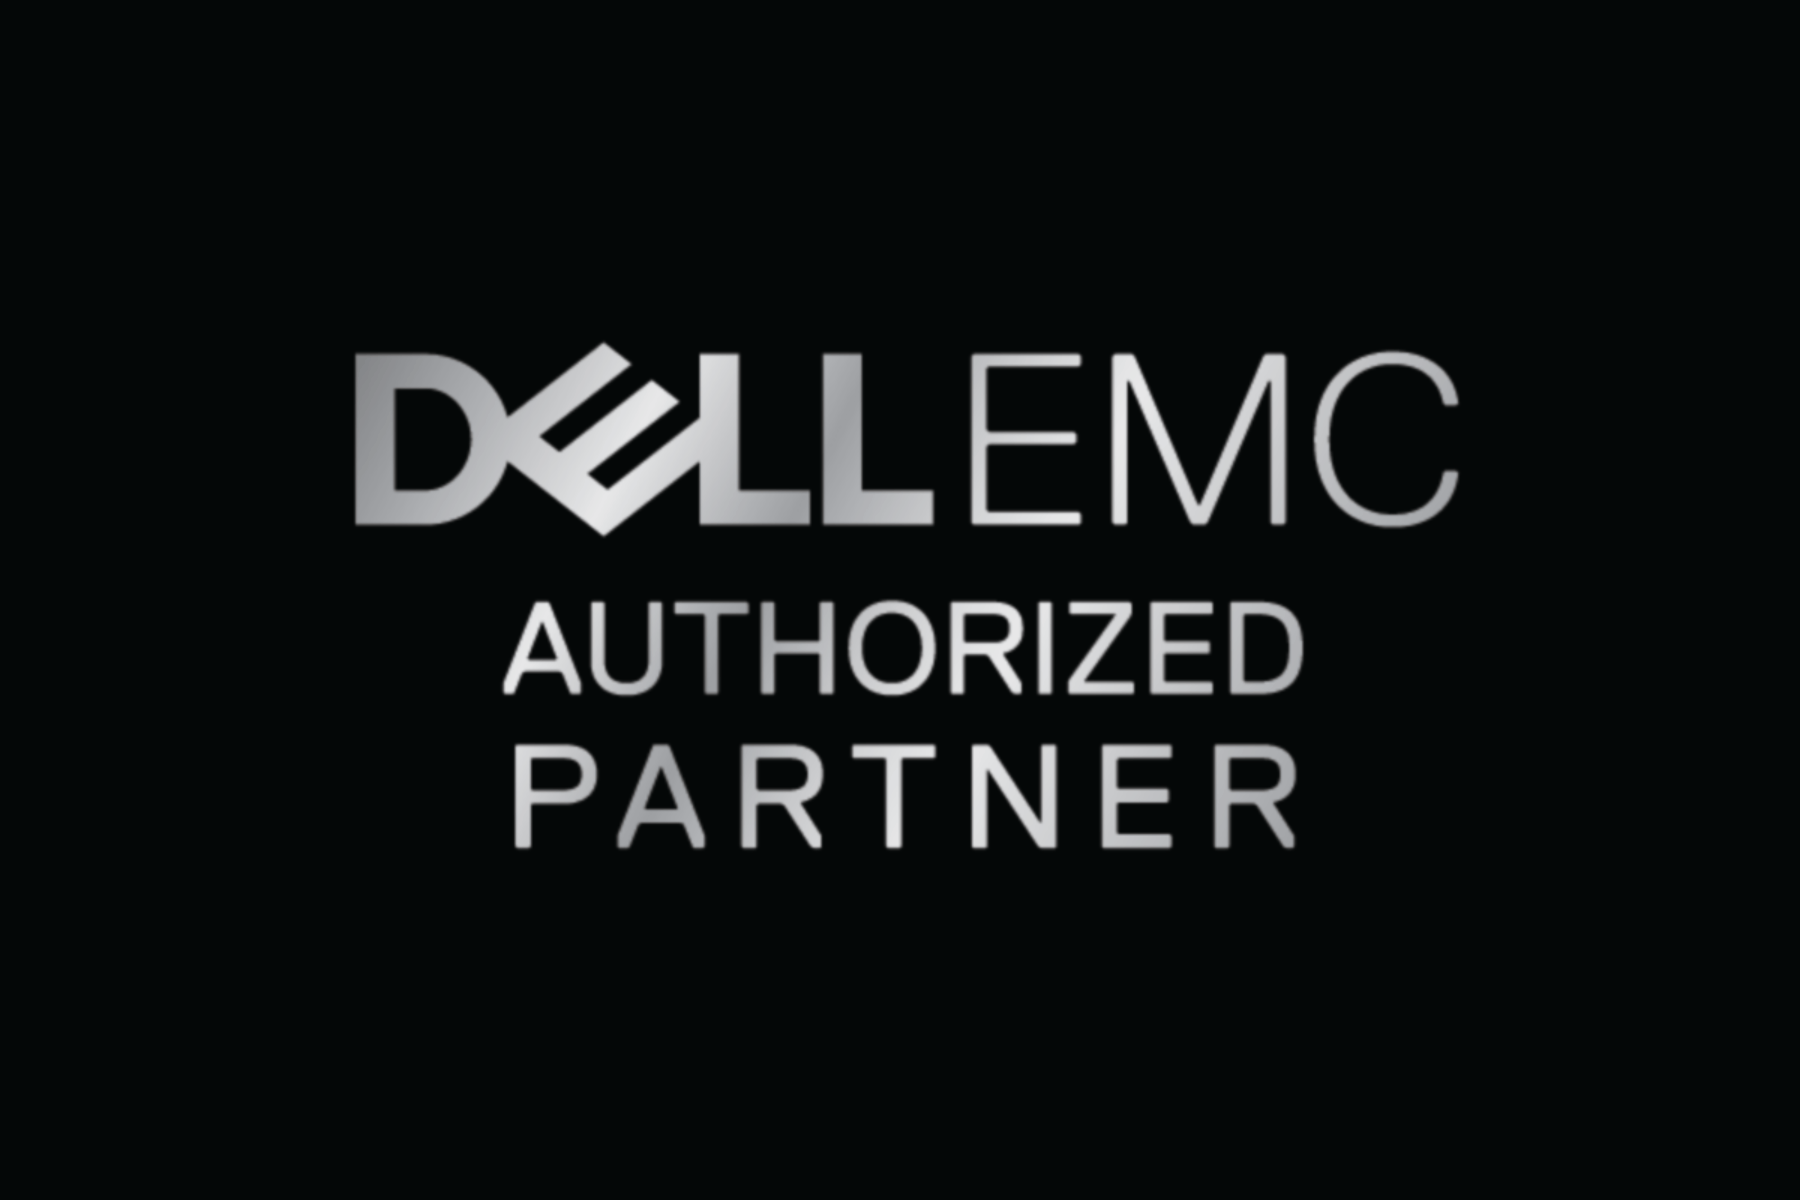 DELLEMC 1800x1200 - Secure Solutions Achieves Dell EMC Partner Status